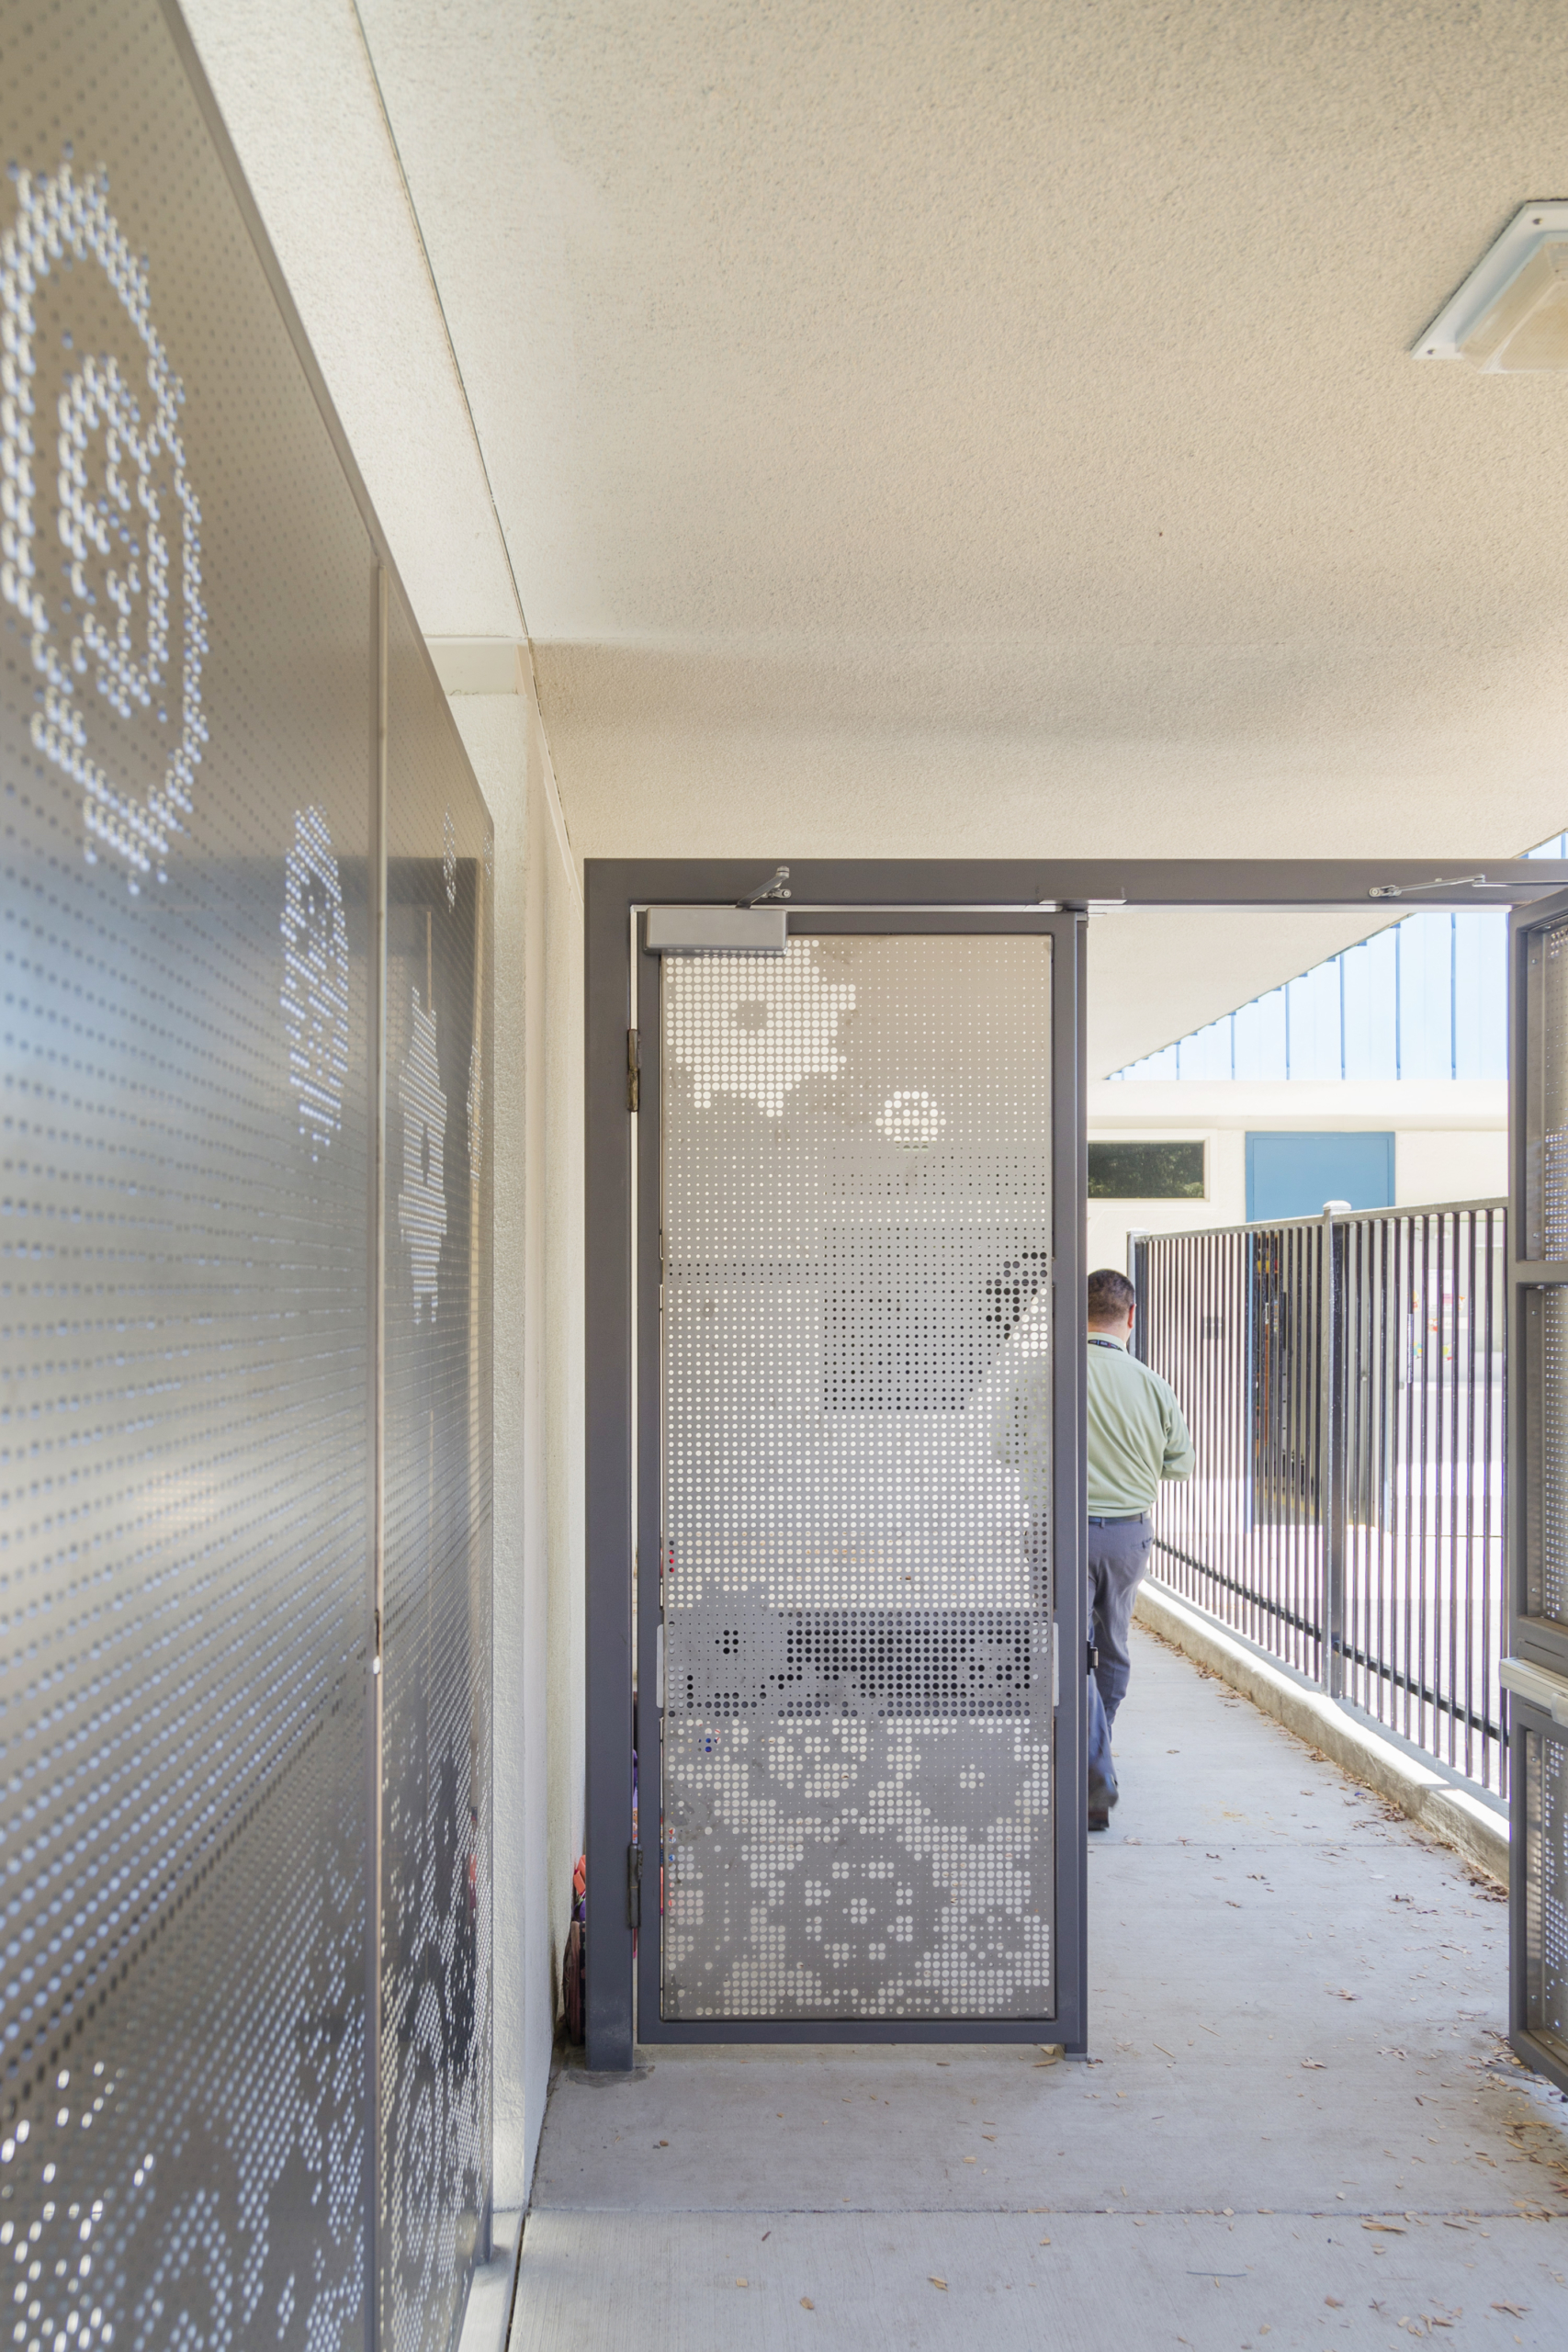 Perforated stainless steel doors at Washington Elementary.